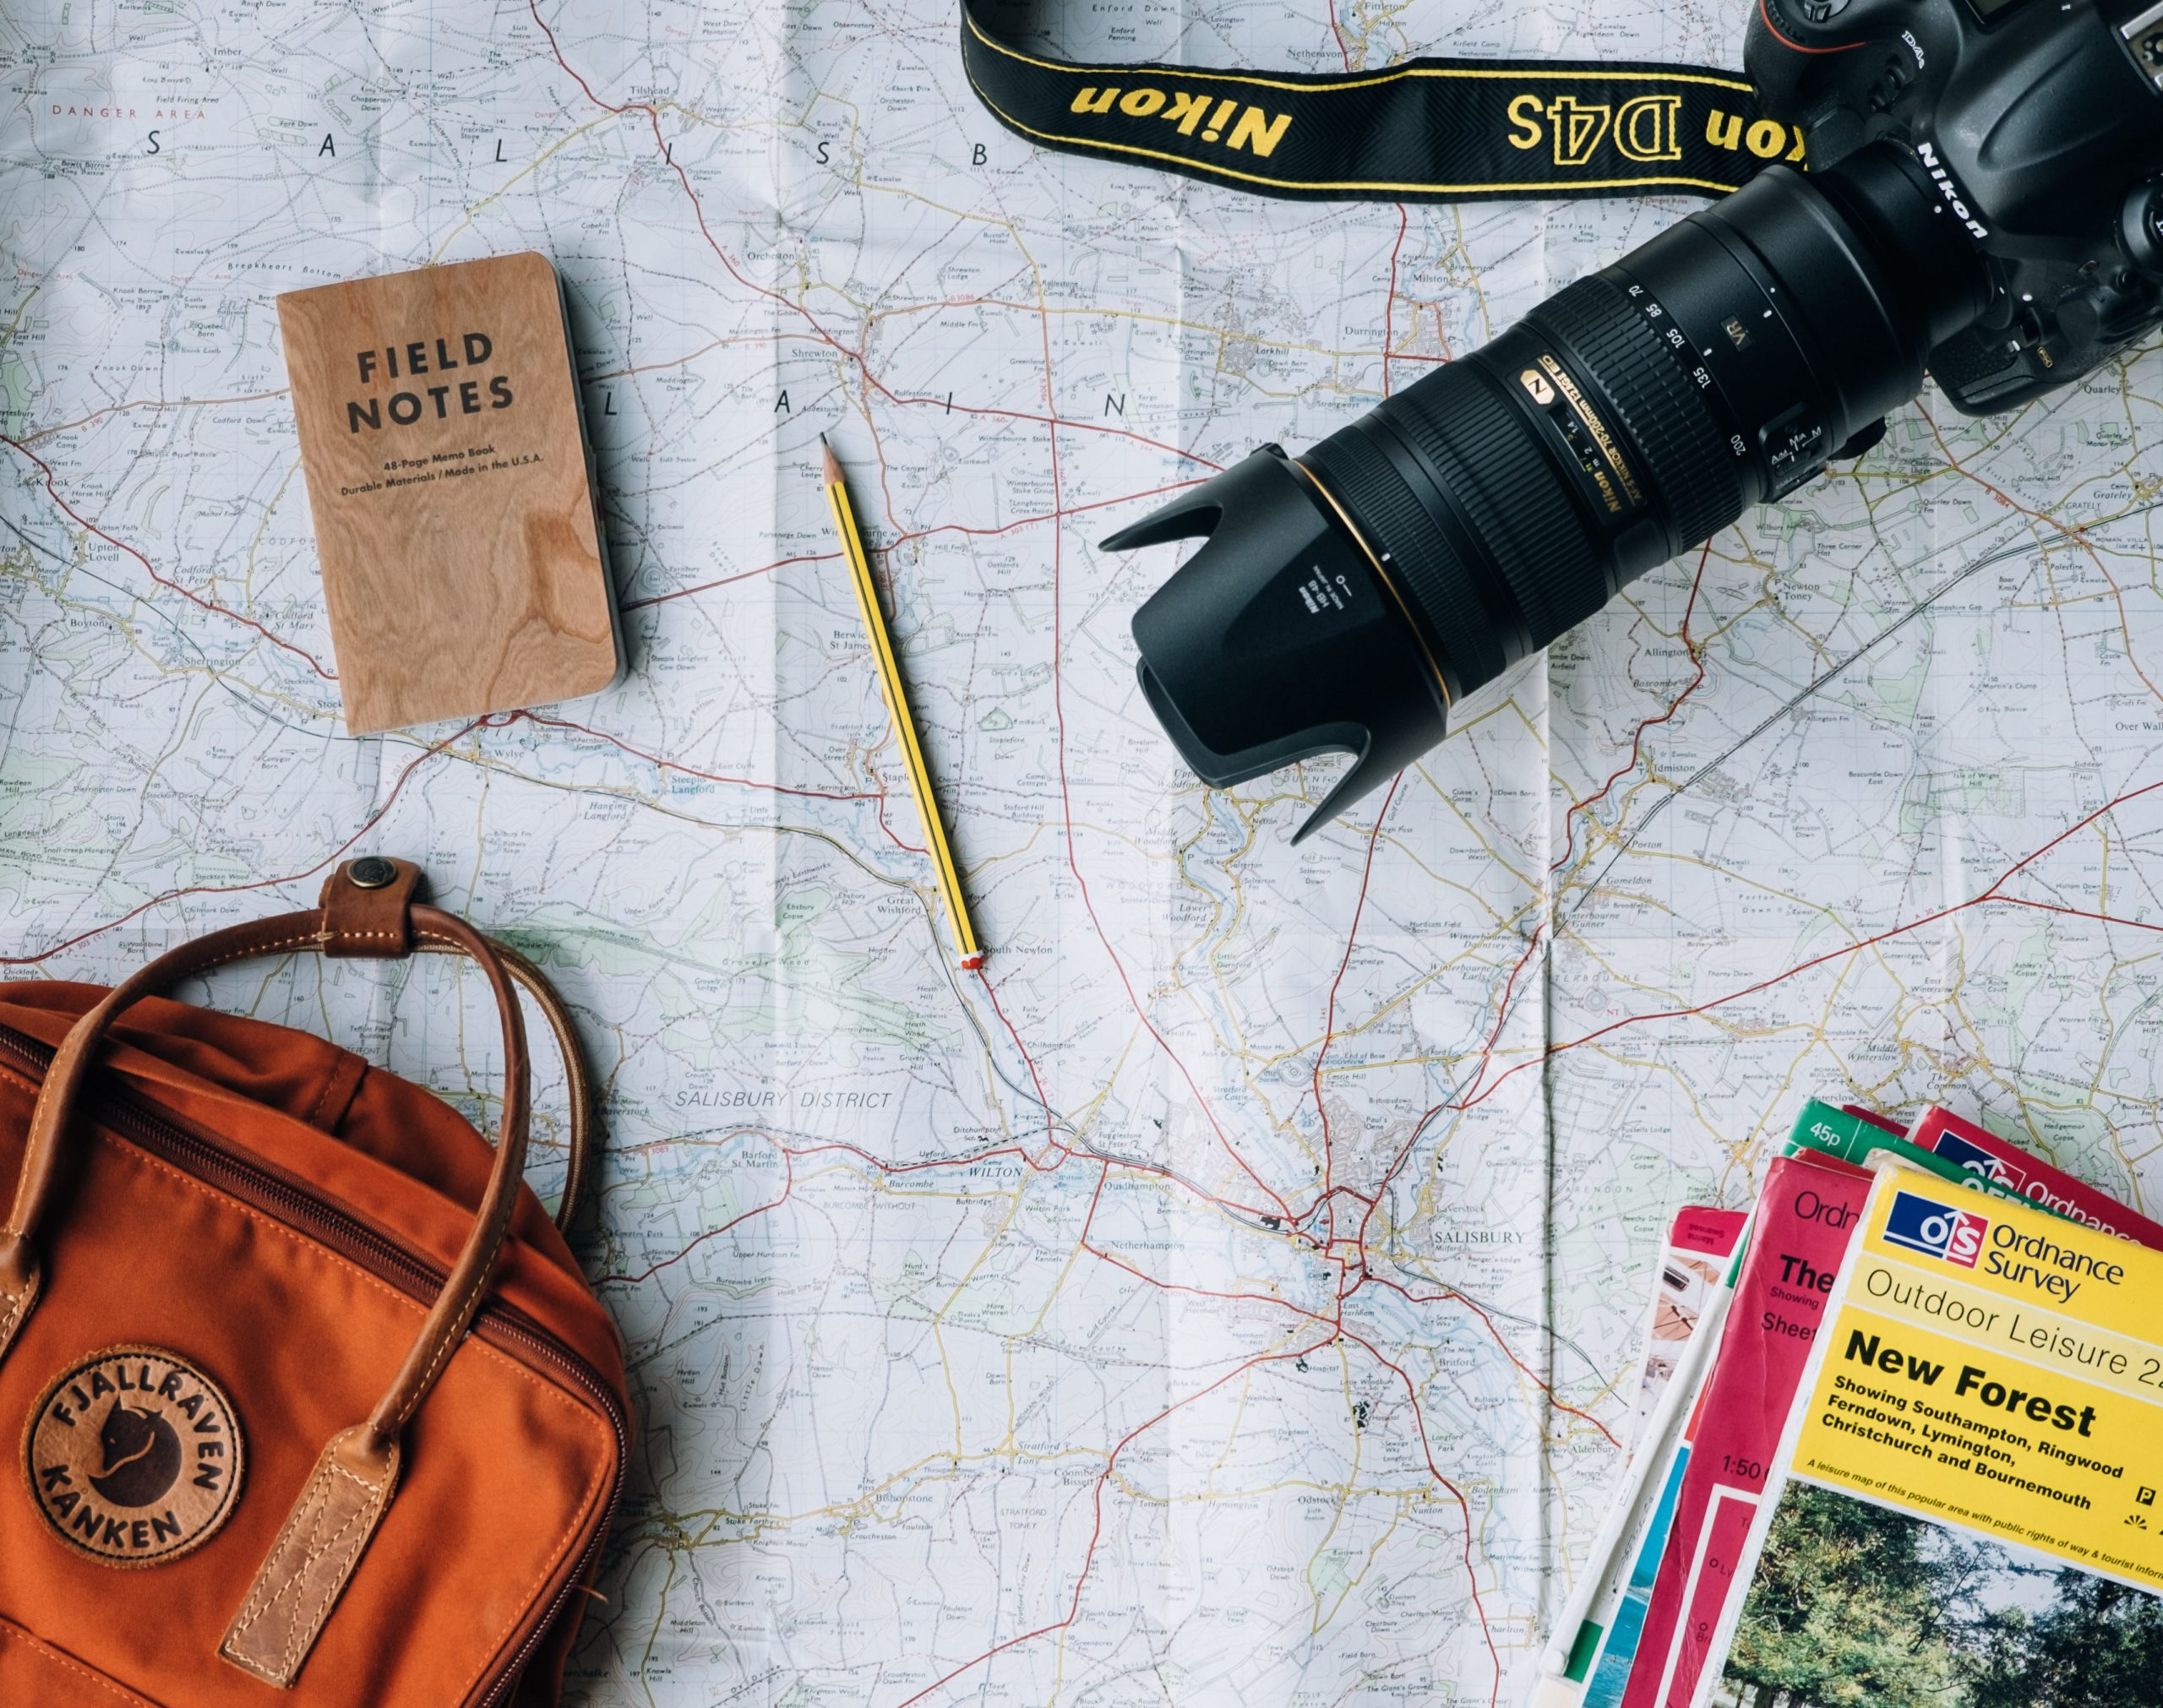 Map and travel gear